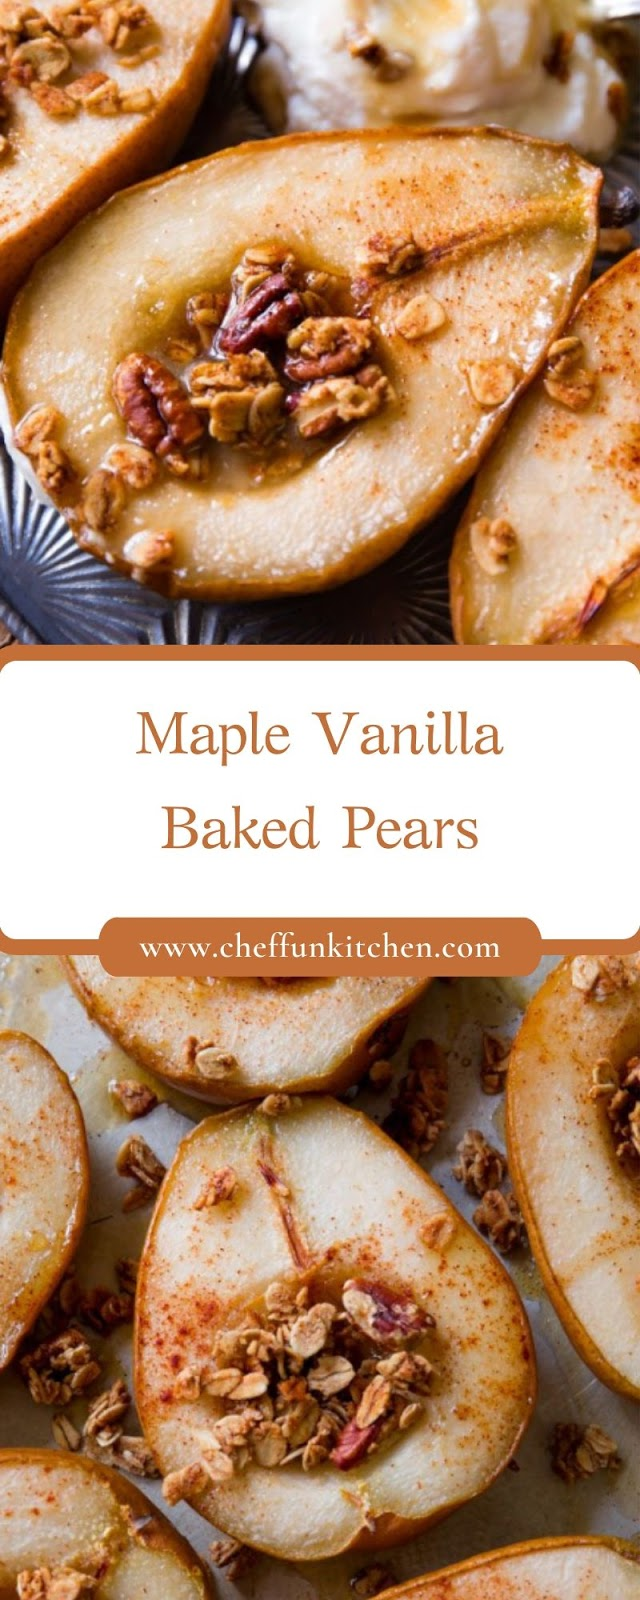 Maple Vanilla Baked Pears